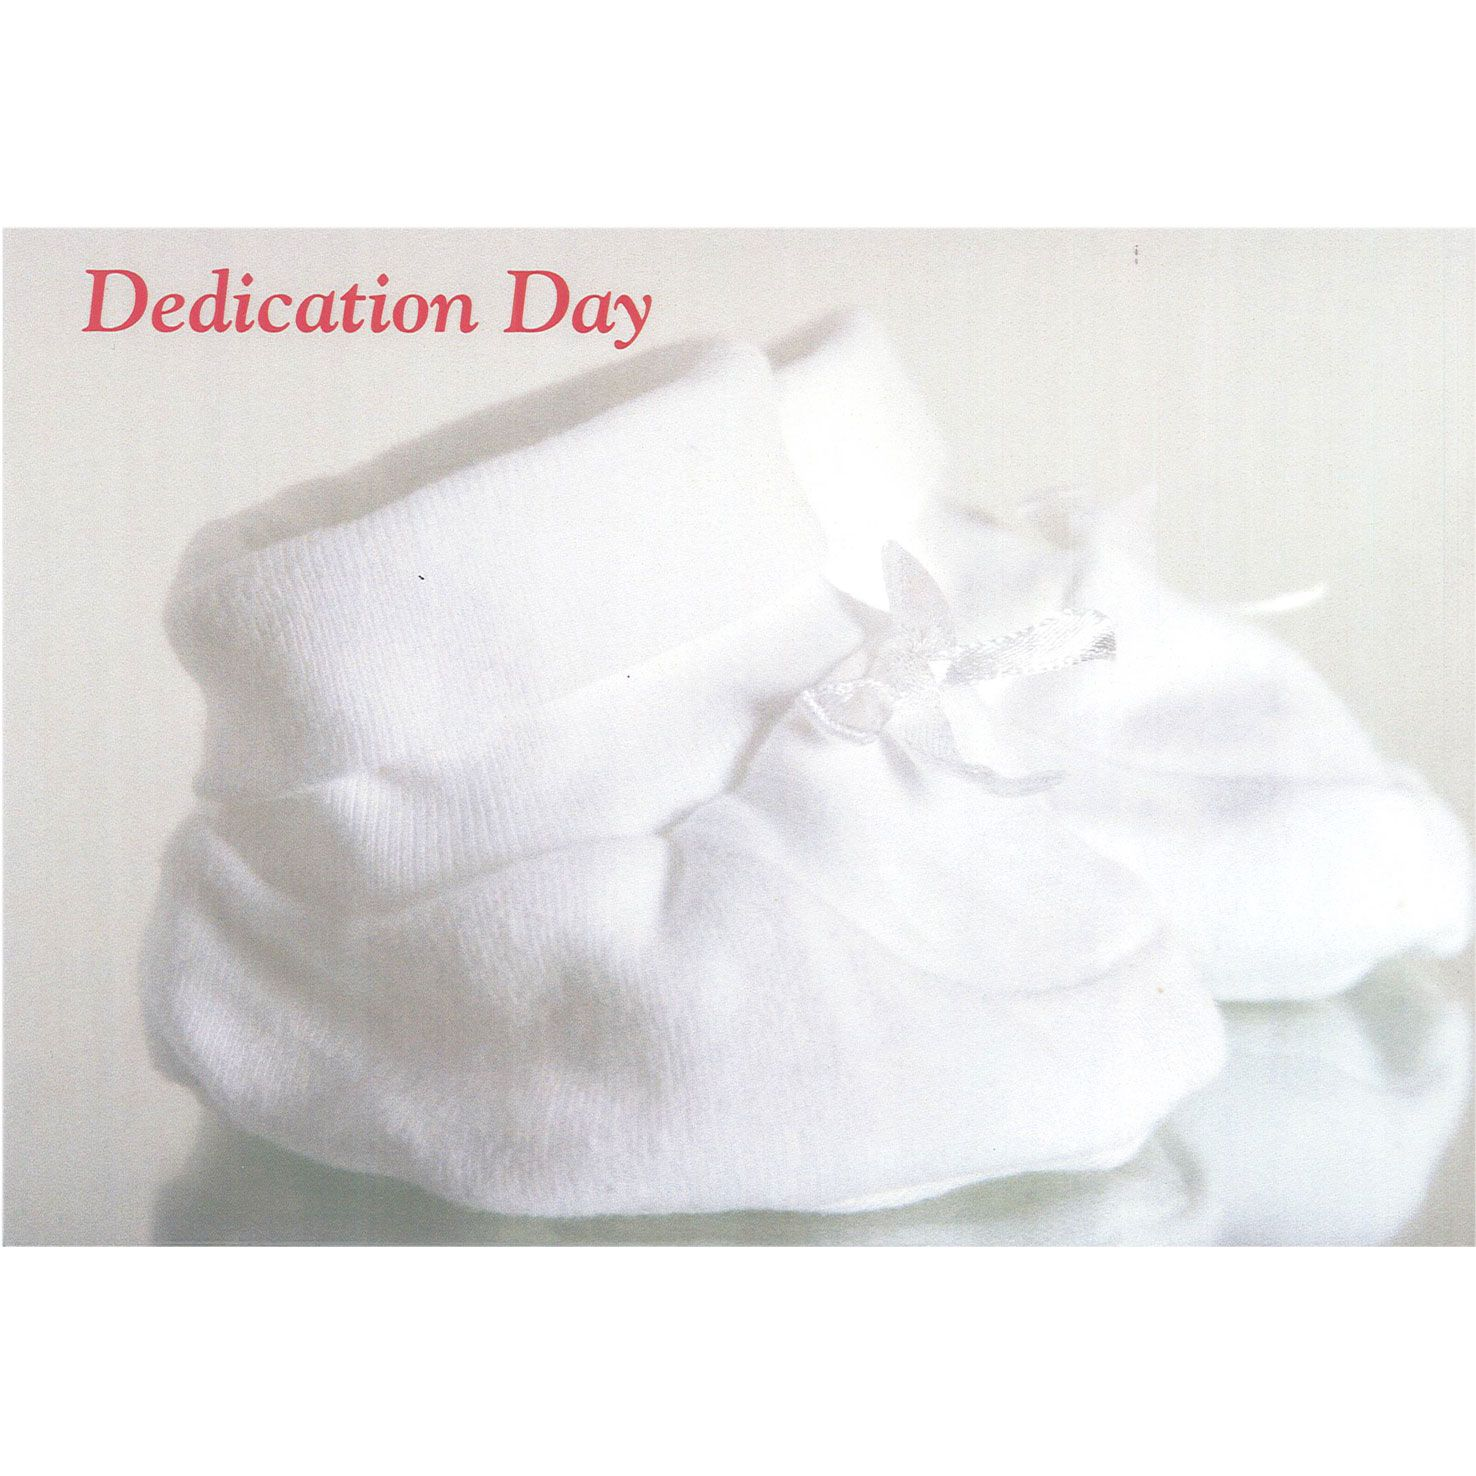 Dedication Card - Booties